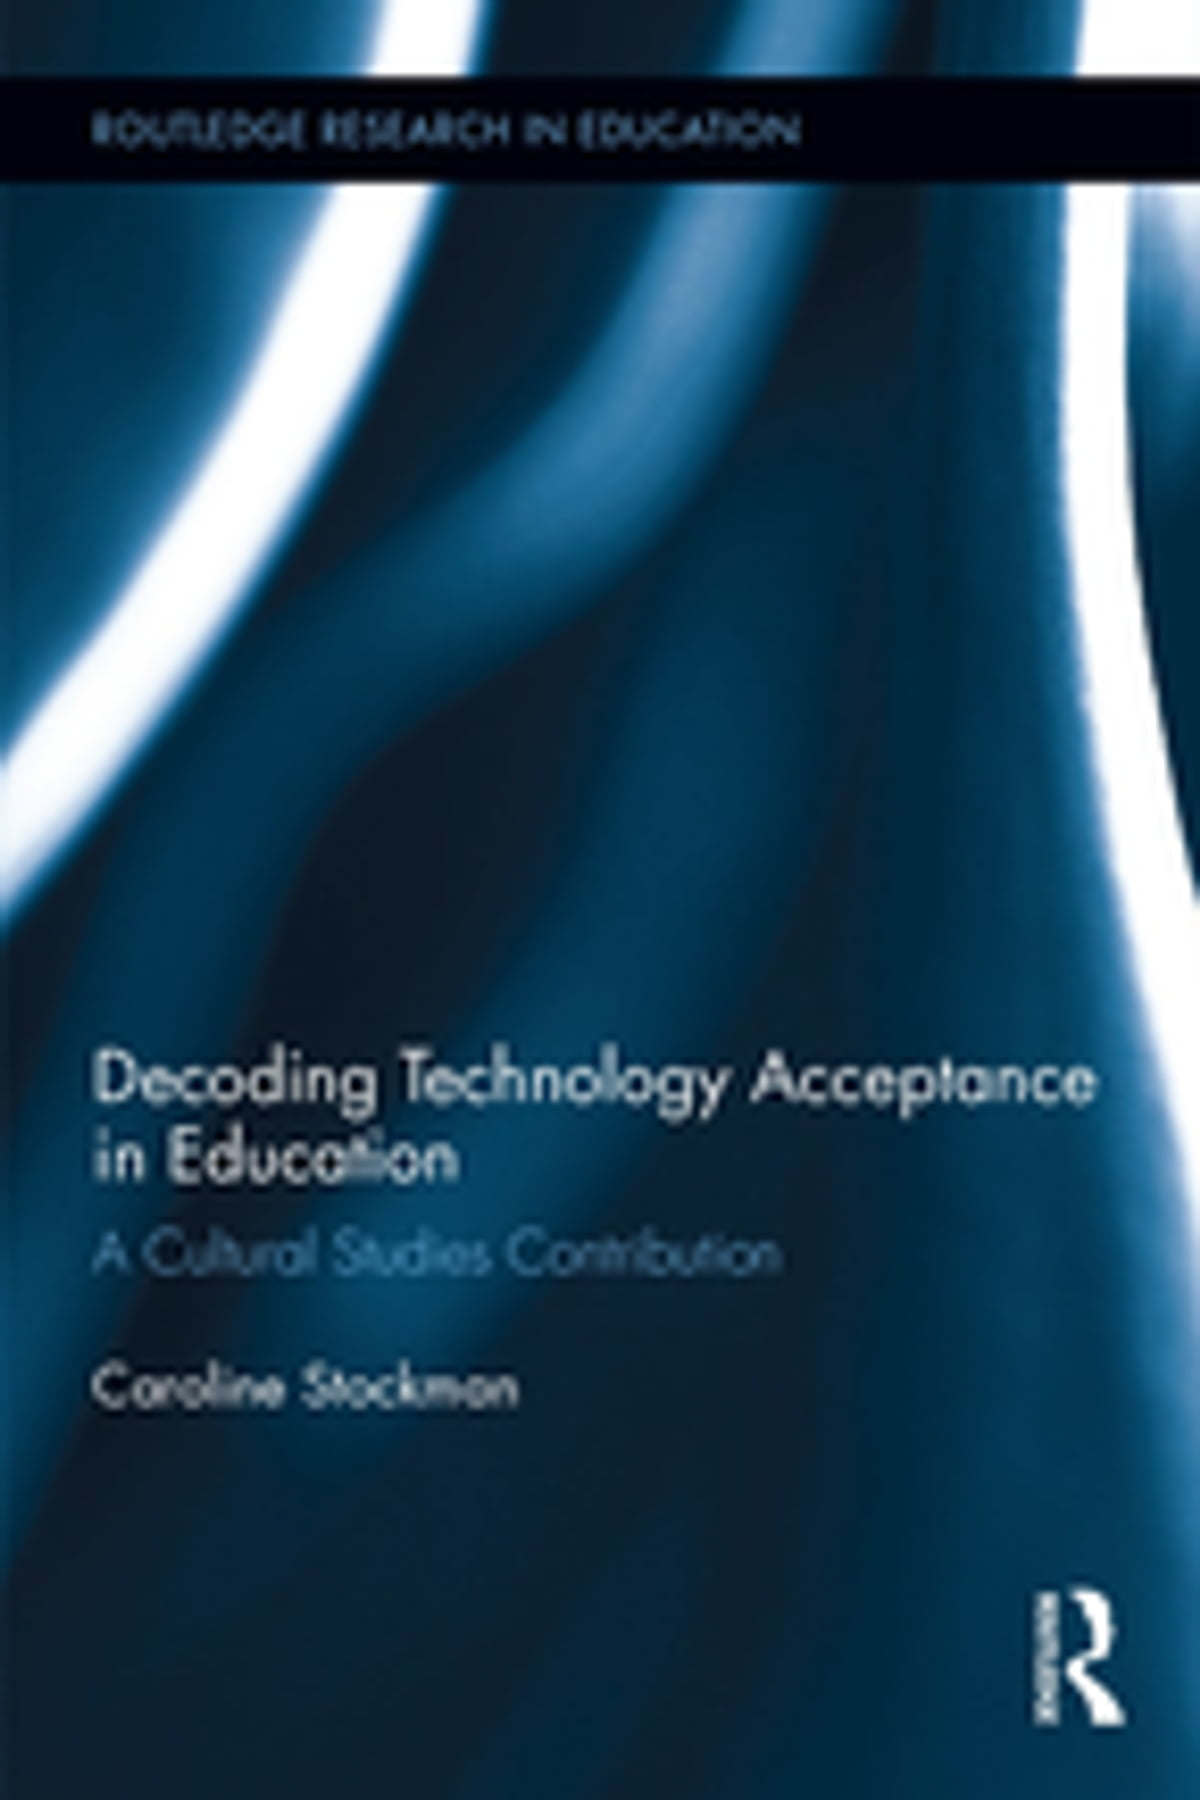 the effect of integrating webquests into education education essay Technology integration is the use of technology tools [citation needed] in general content areas in education in order to allow students to apply computer and technology skills to learning and problem-solving.